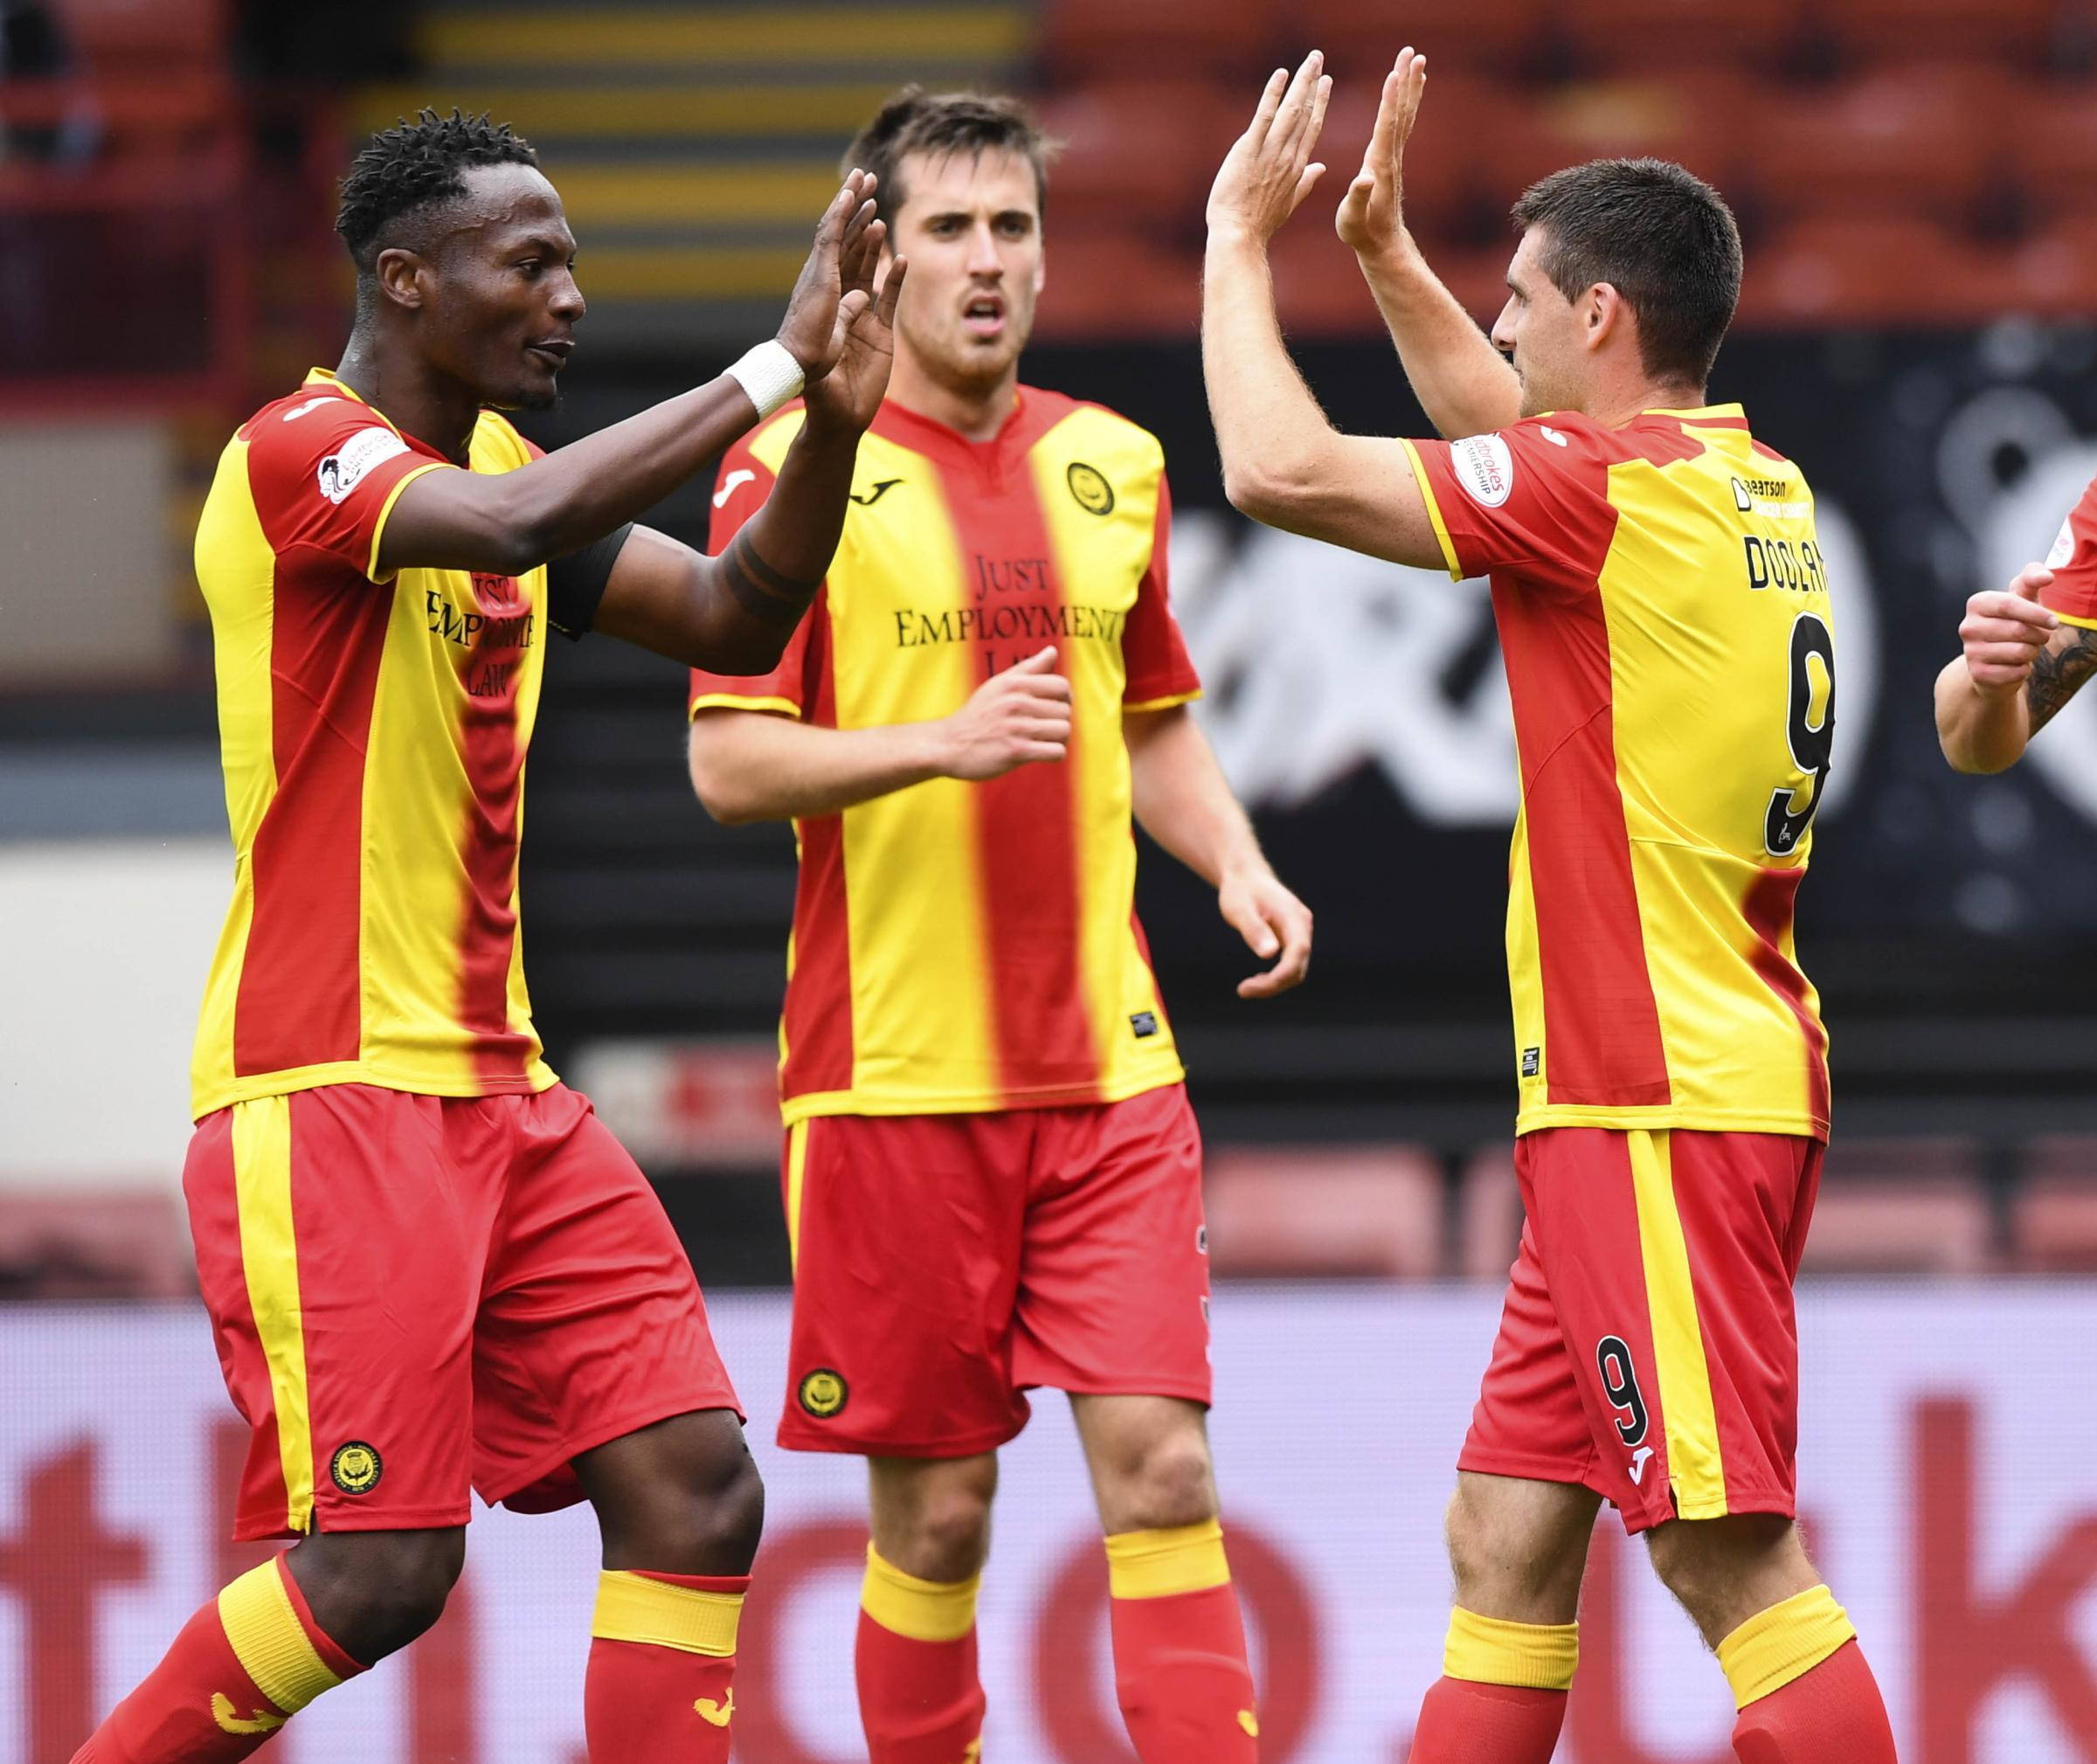 Abdul Osman (left) and Callum Booth (centre) both made their return from injury in Partick Thistle's win over Shanghai Shenhua.